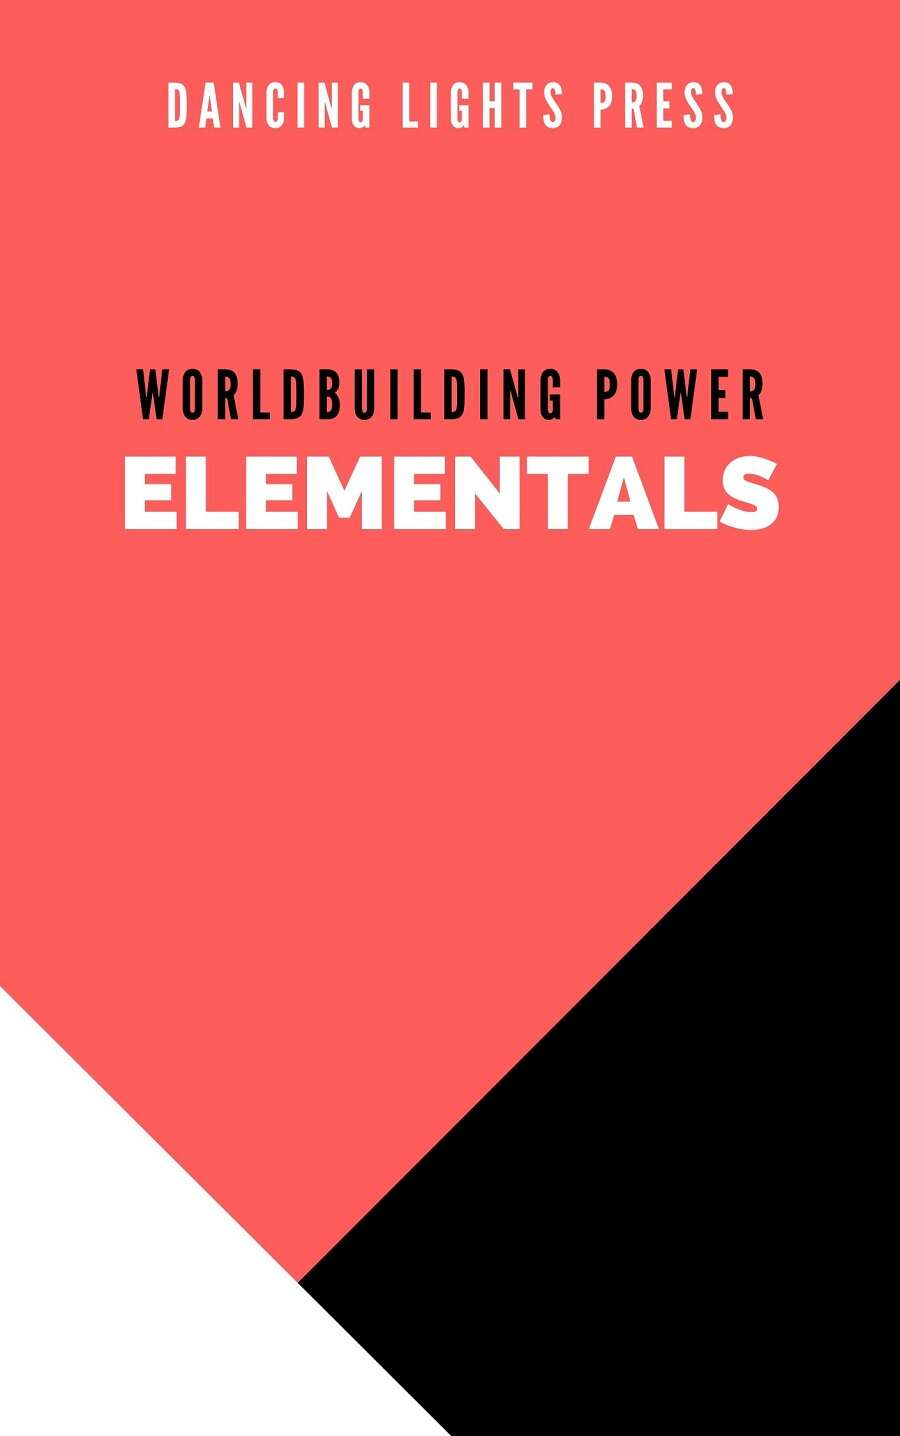 Worldbuilding Power: Elementals